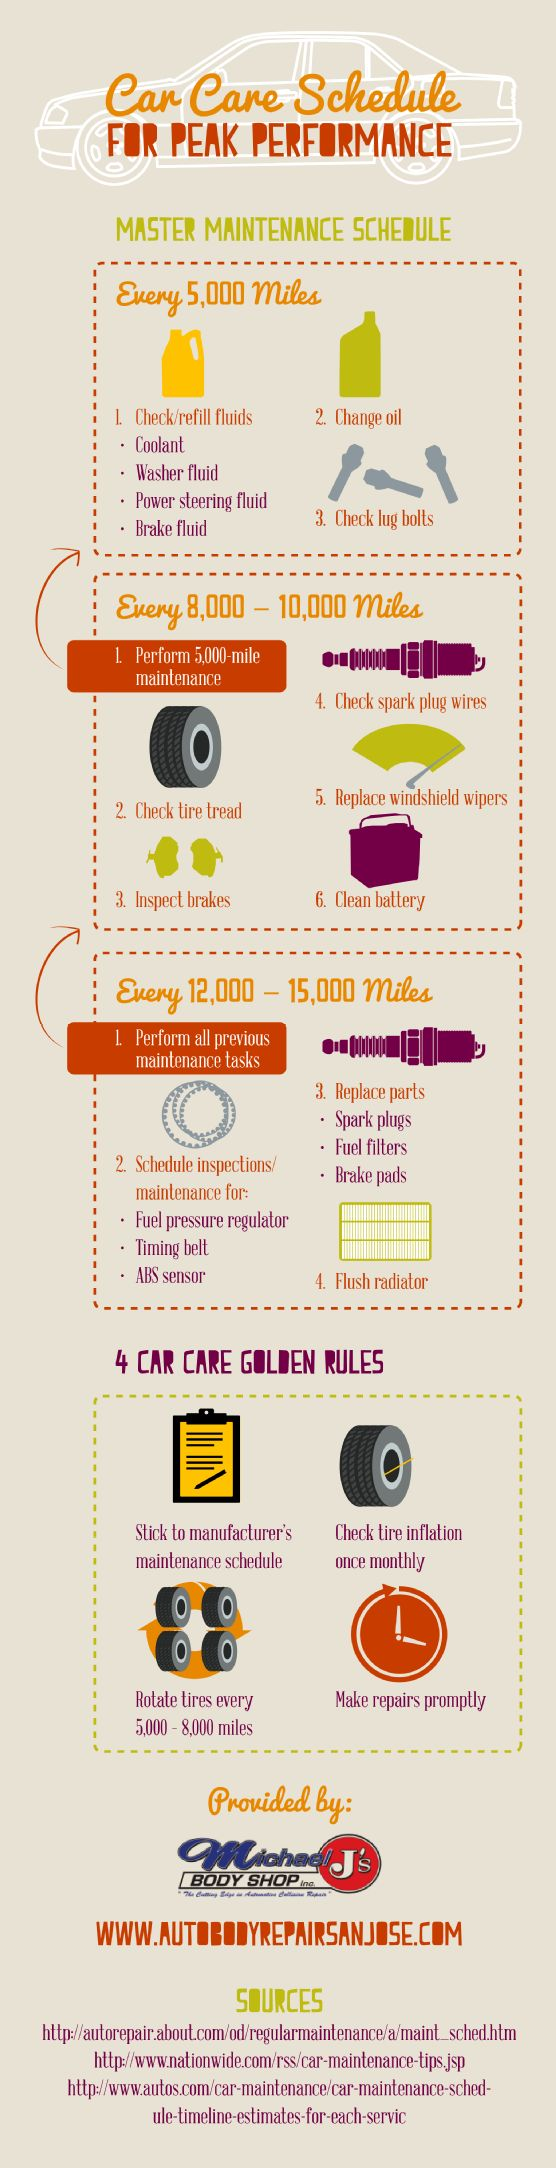 When a car reaches 8,000-10,000 miles, it is important to check the tire tread, replace the windshield wipers, inspect the brakes, and clean the battery. This infographic from Michael J's Body Shop has more information about car care.